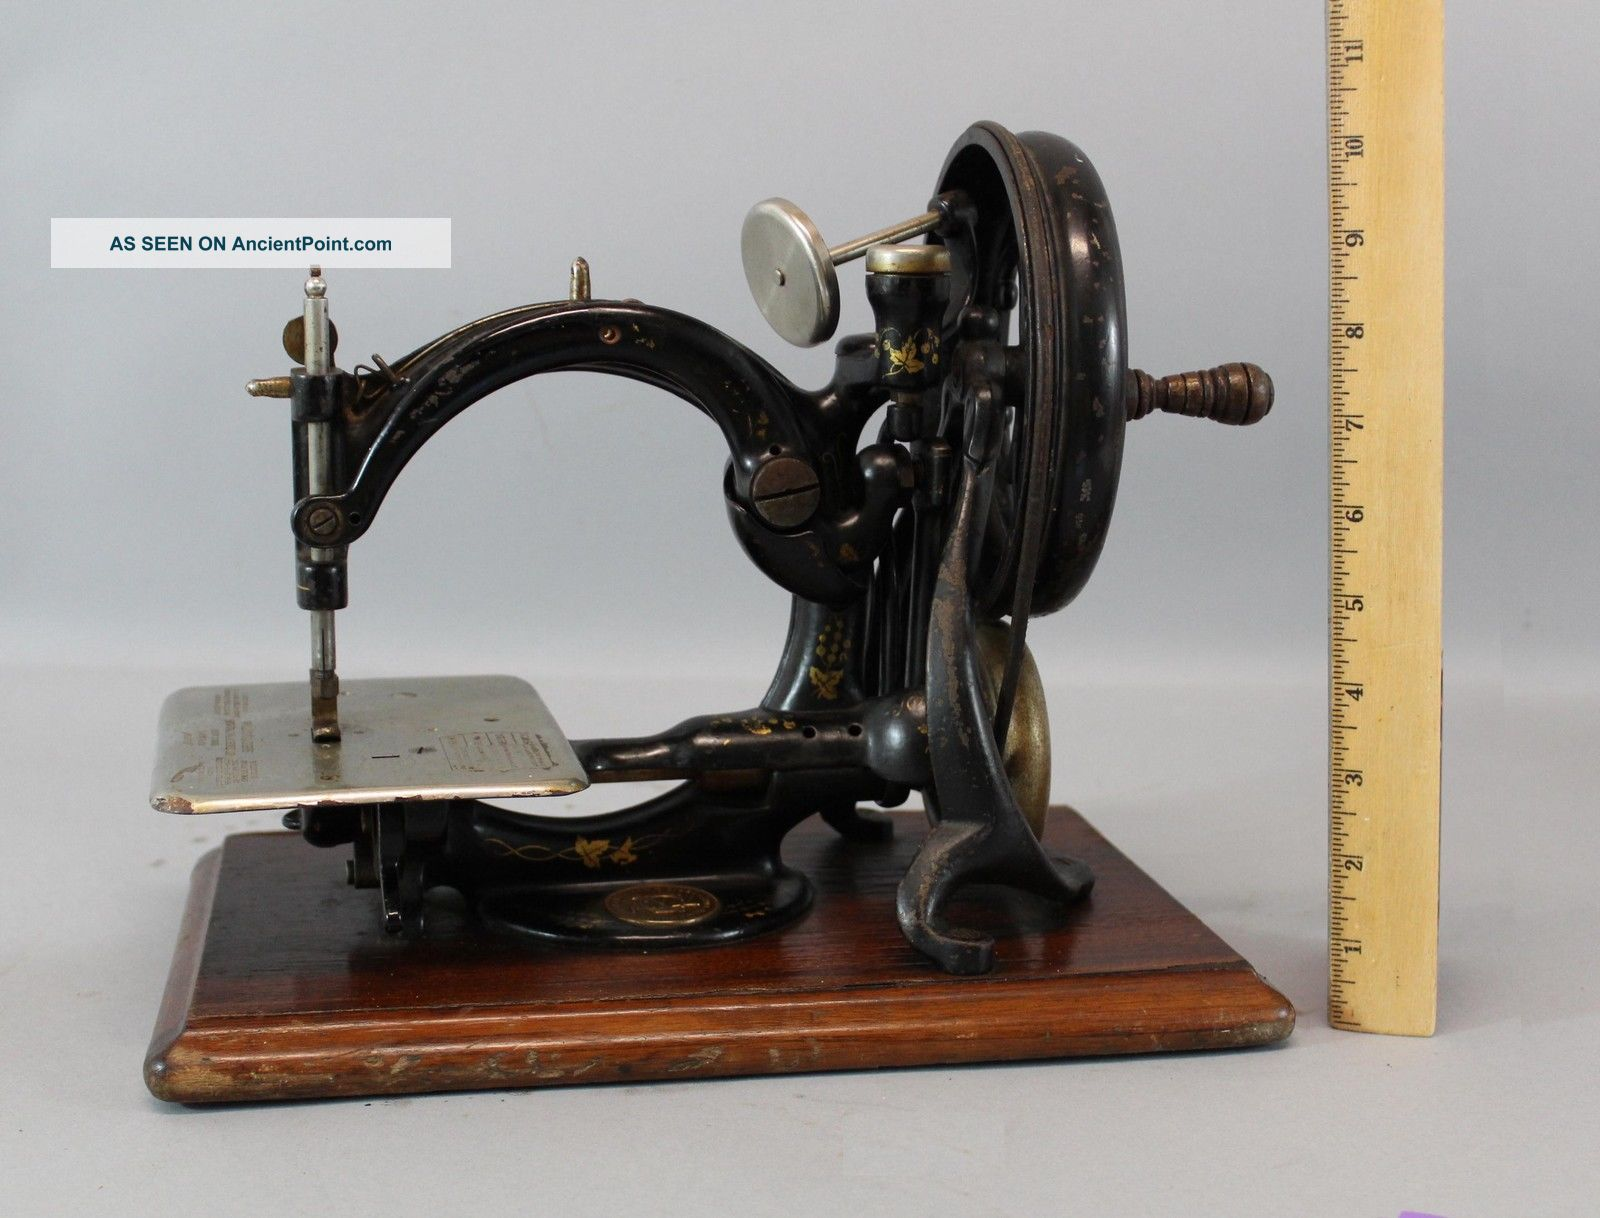 Antique 19thc Wilcox & Gibbs Sewing Machine Co Wooden Base,  No Rerserve Sewing Machines photo